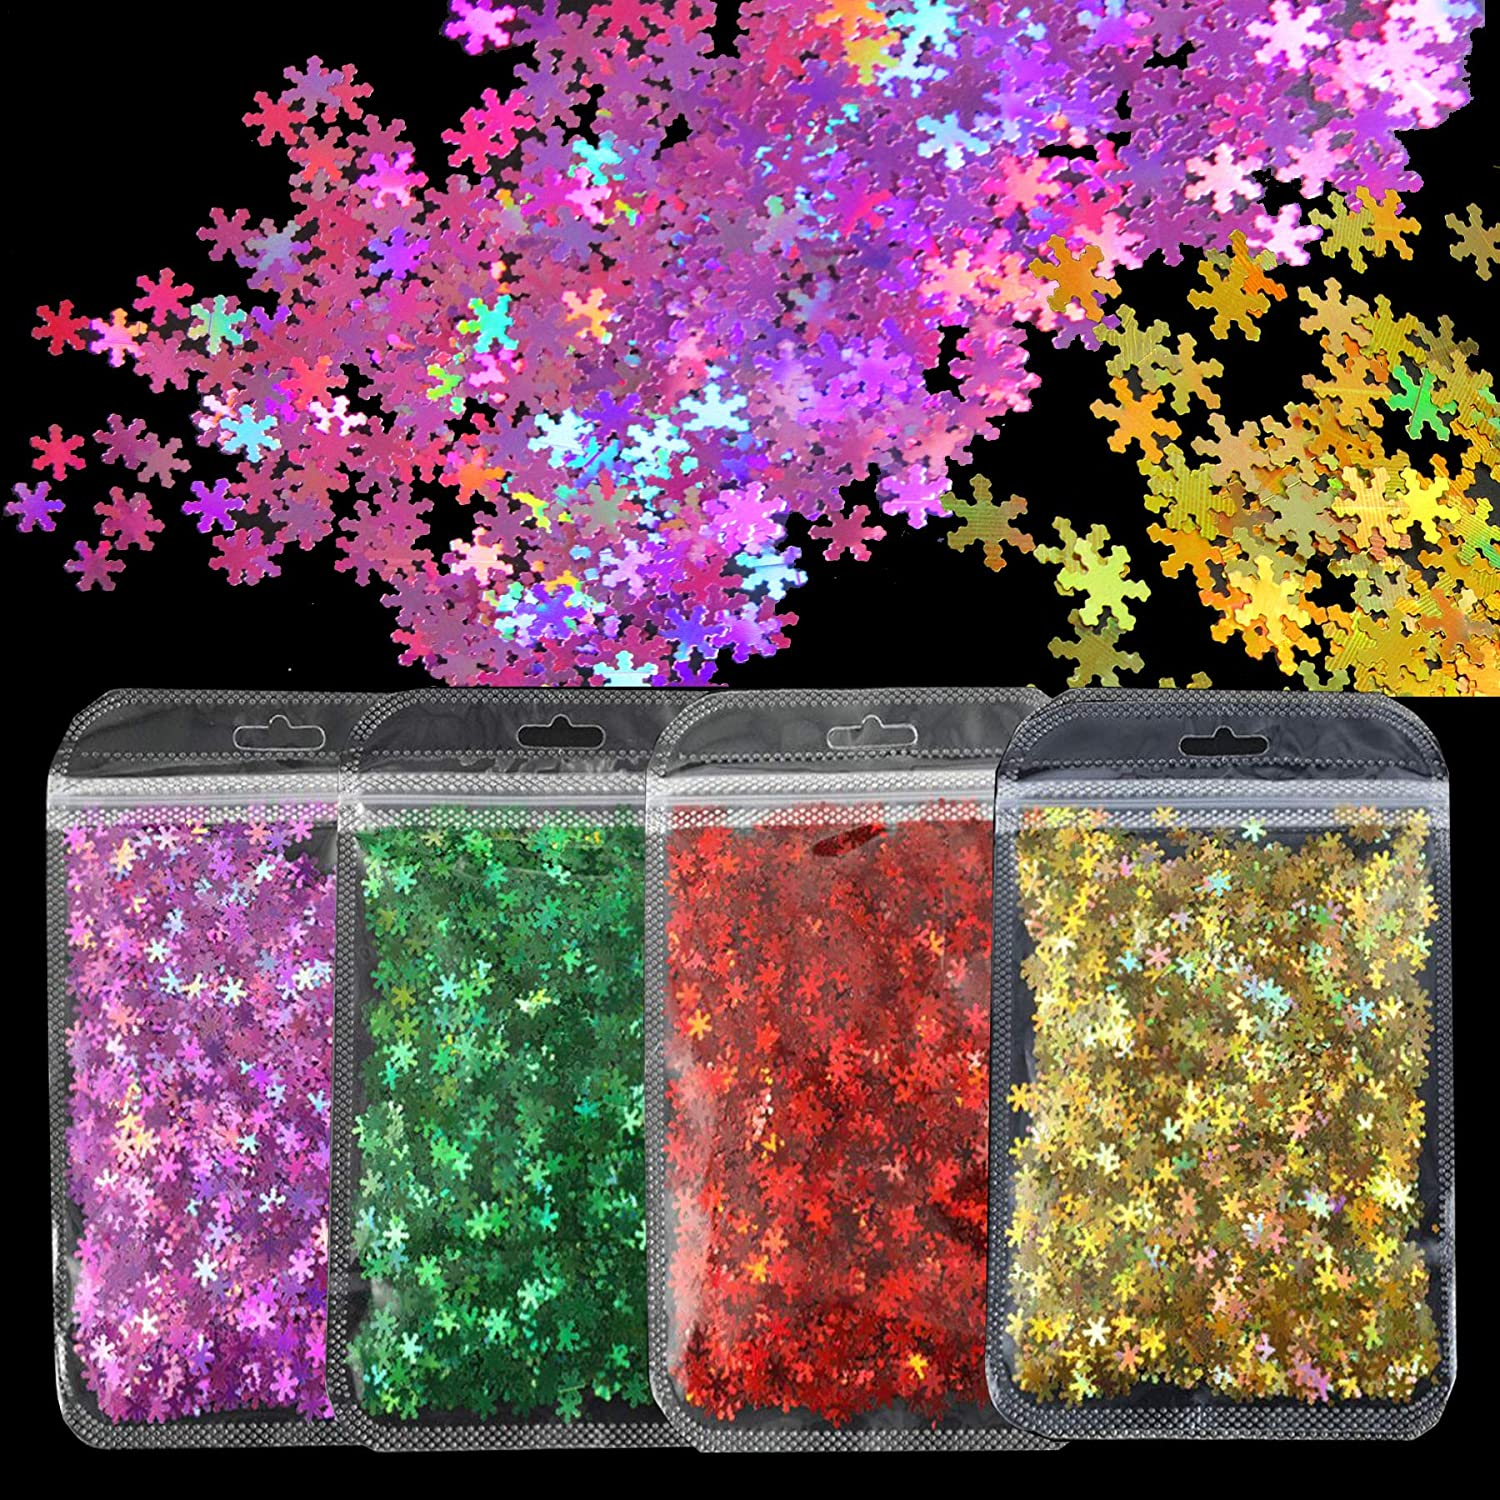 40g Holographic Snowflake Glitter Confetti Holo Laser Red Gold Green Snow Flake Chunky Glitter Sequins Flakes Accessories for Nail Art, Resin Epoxy